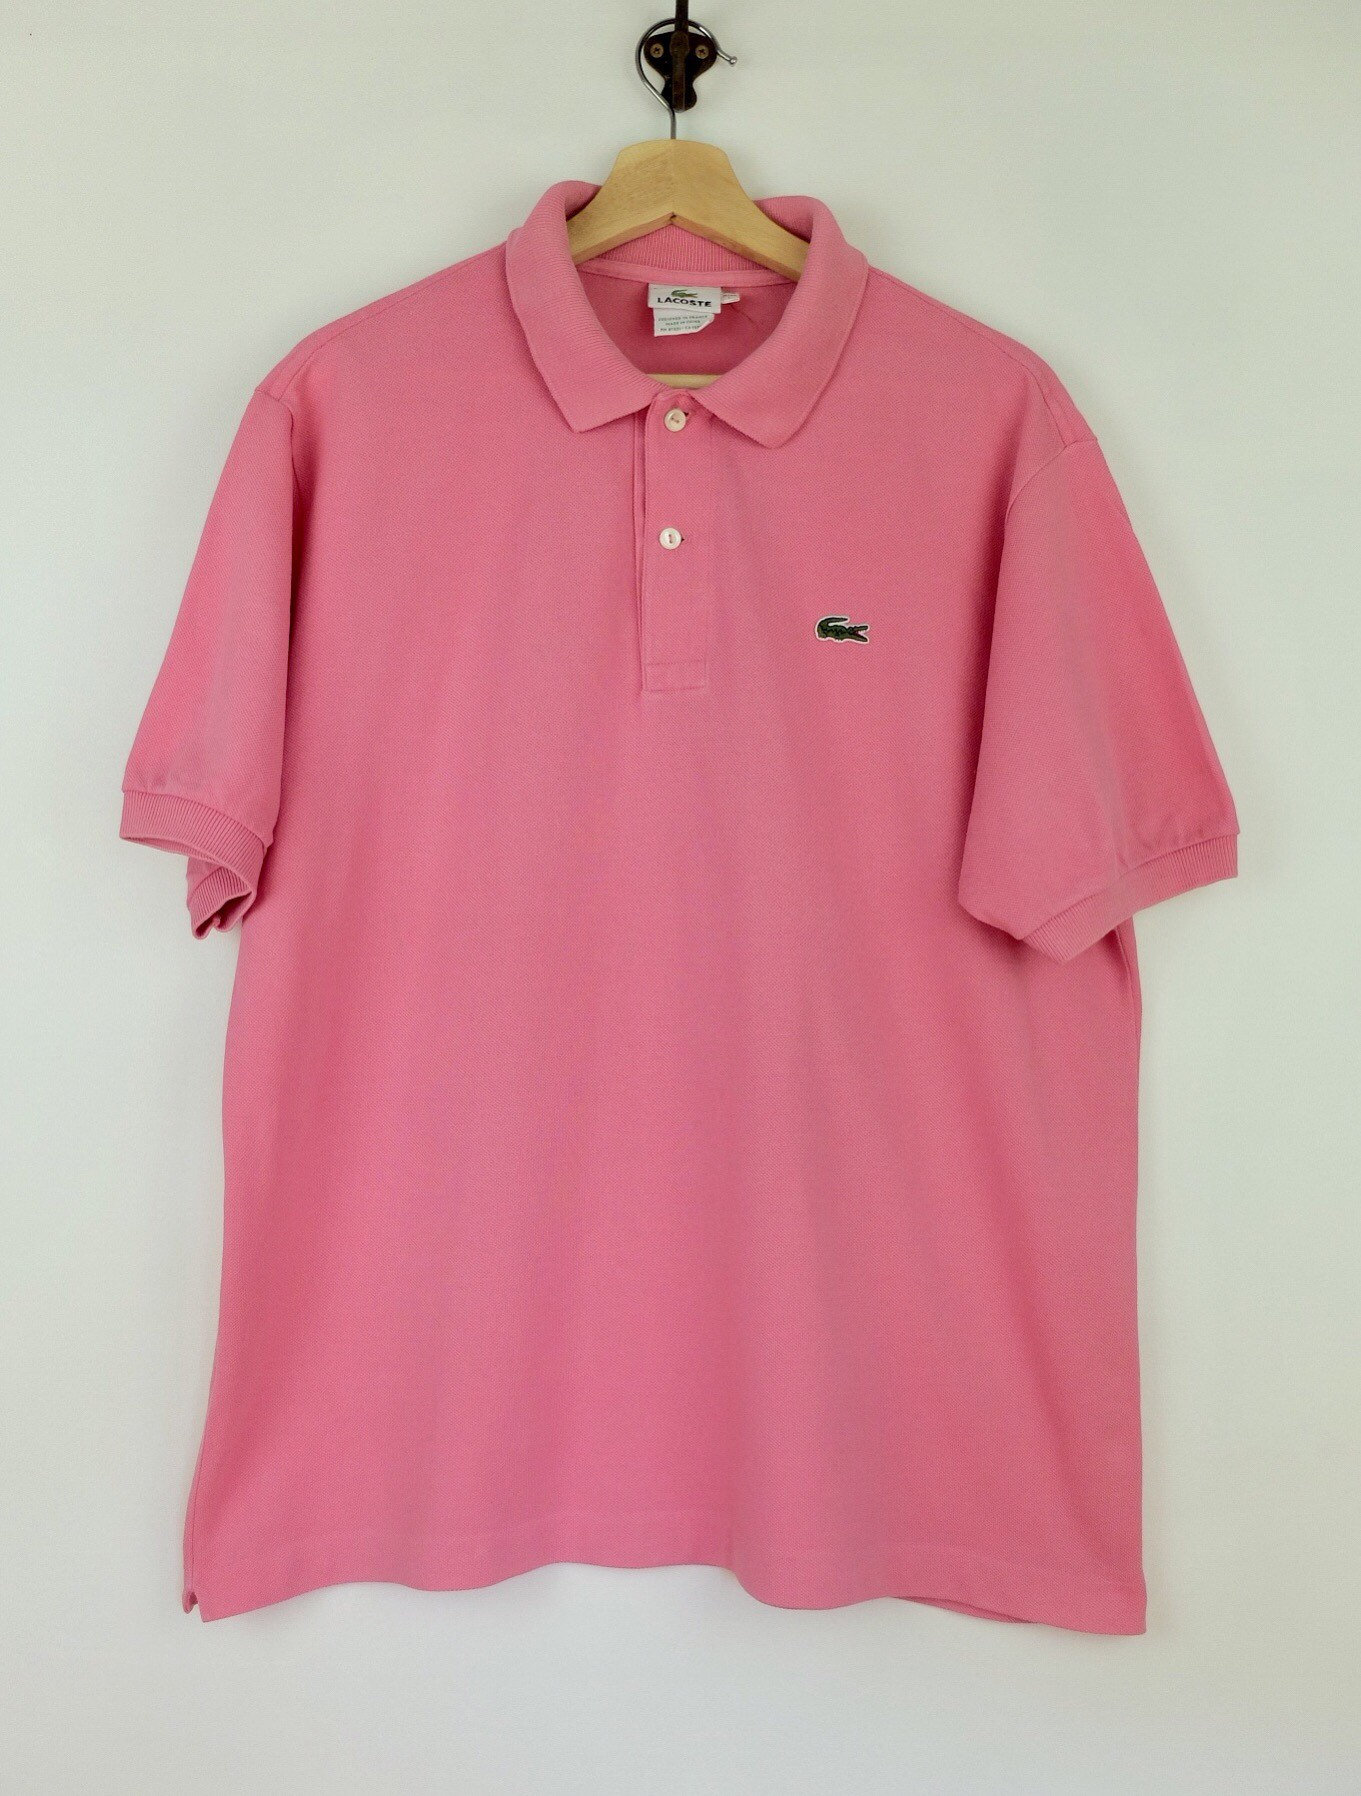 216340229 Vintage pink Lacoste Polo